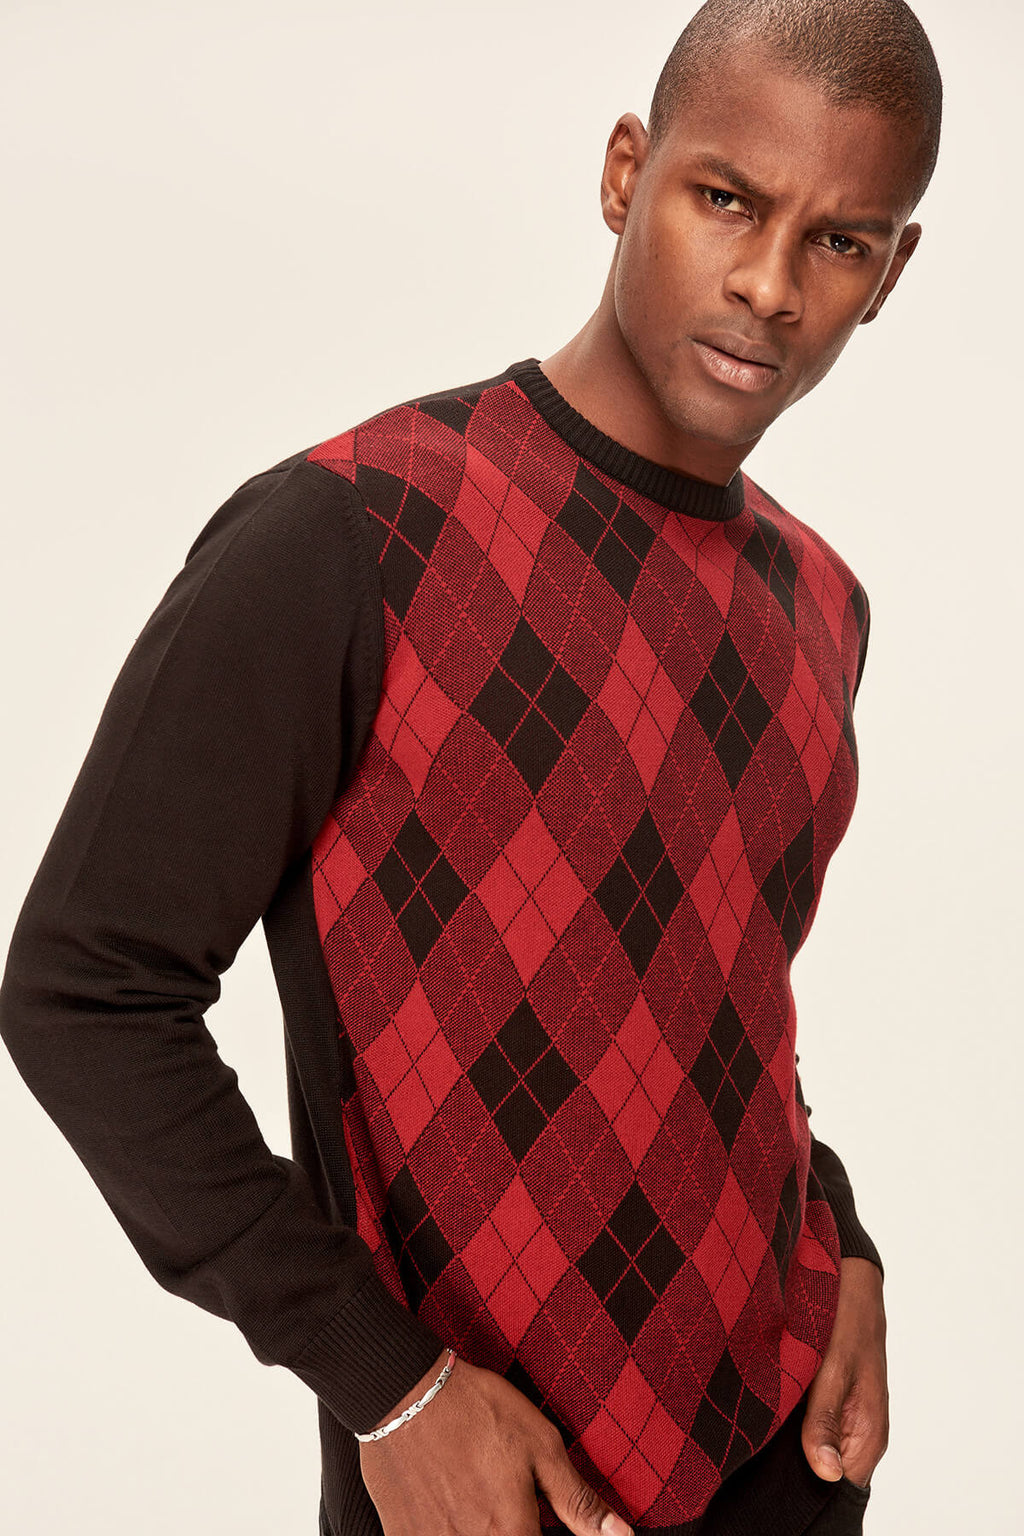 Trendyol Black Men's Knitwear Sweater - Diamond Pattern TMNAW19YT0010 - sweet-casa.com